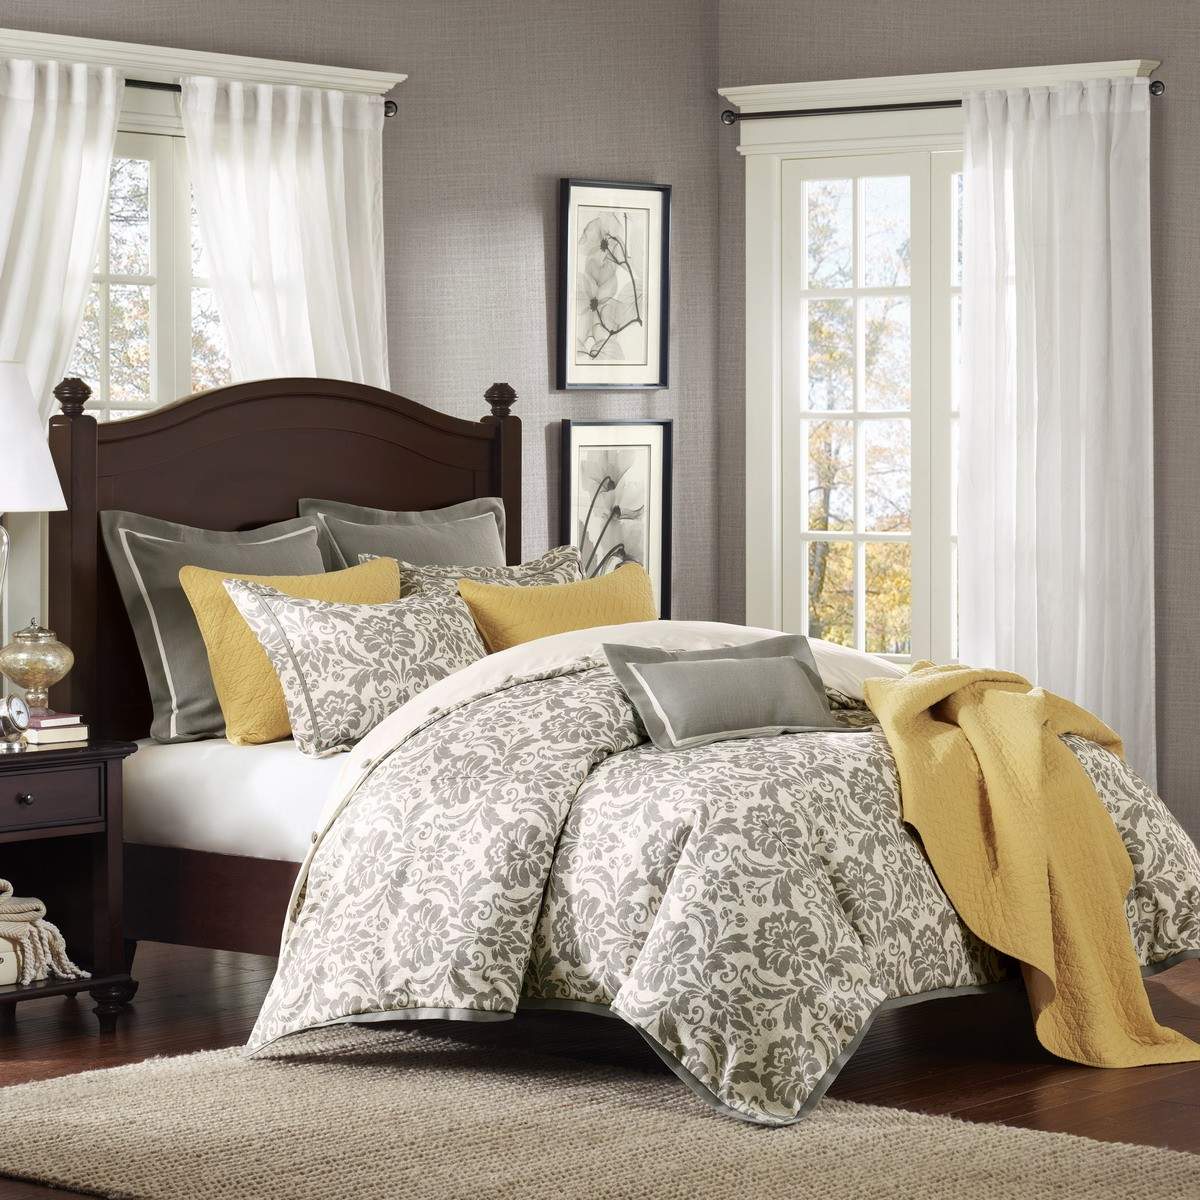 Grey king size bedding ideas homesfeed for Bedding room furniture